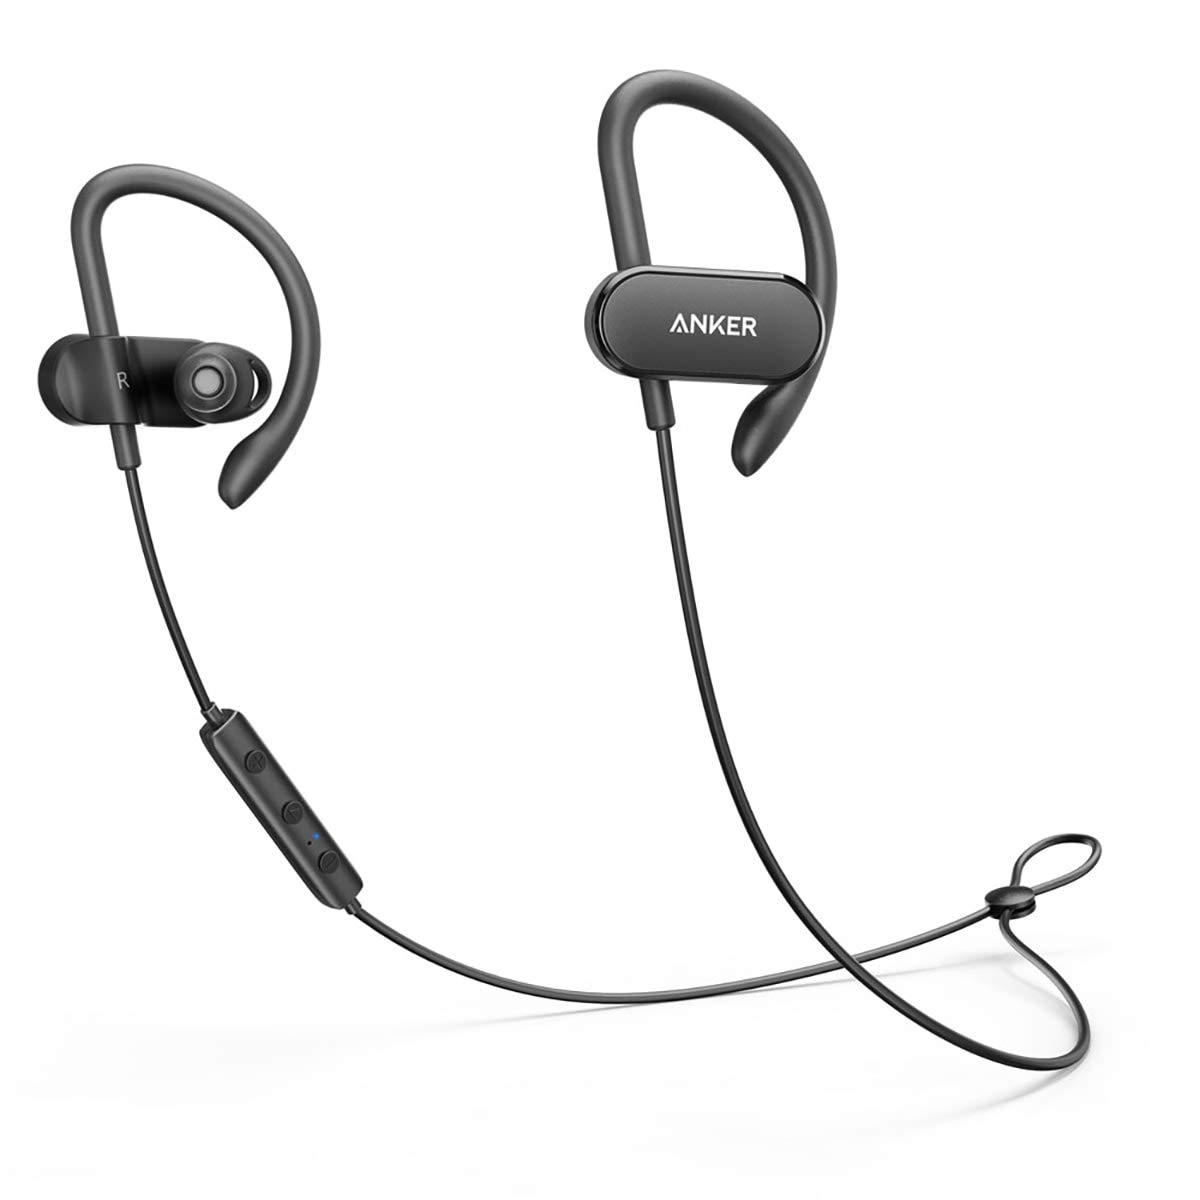 Anker SoundBuds Curve Wireless Earbuds, Bluetooth 4.1 Sports Earphones w/Ear Hook and Waterproof Nano Coating, 14hr Battery, CVC Noise Cancellation, Gym and Running Workout Headset w/Pouch